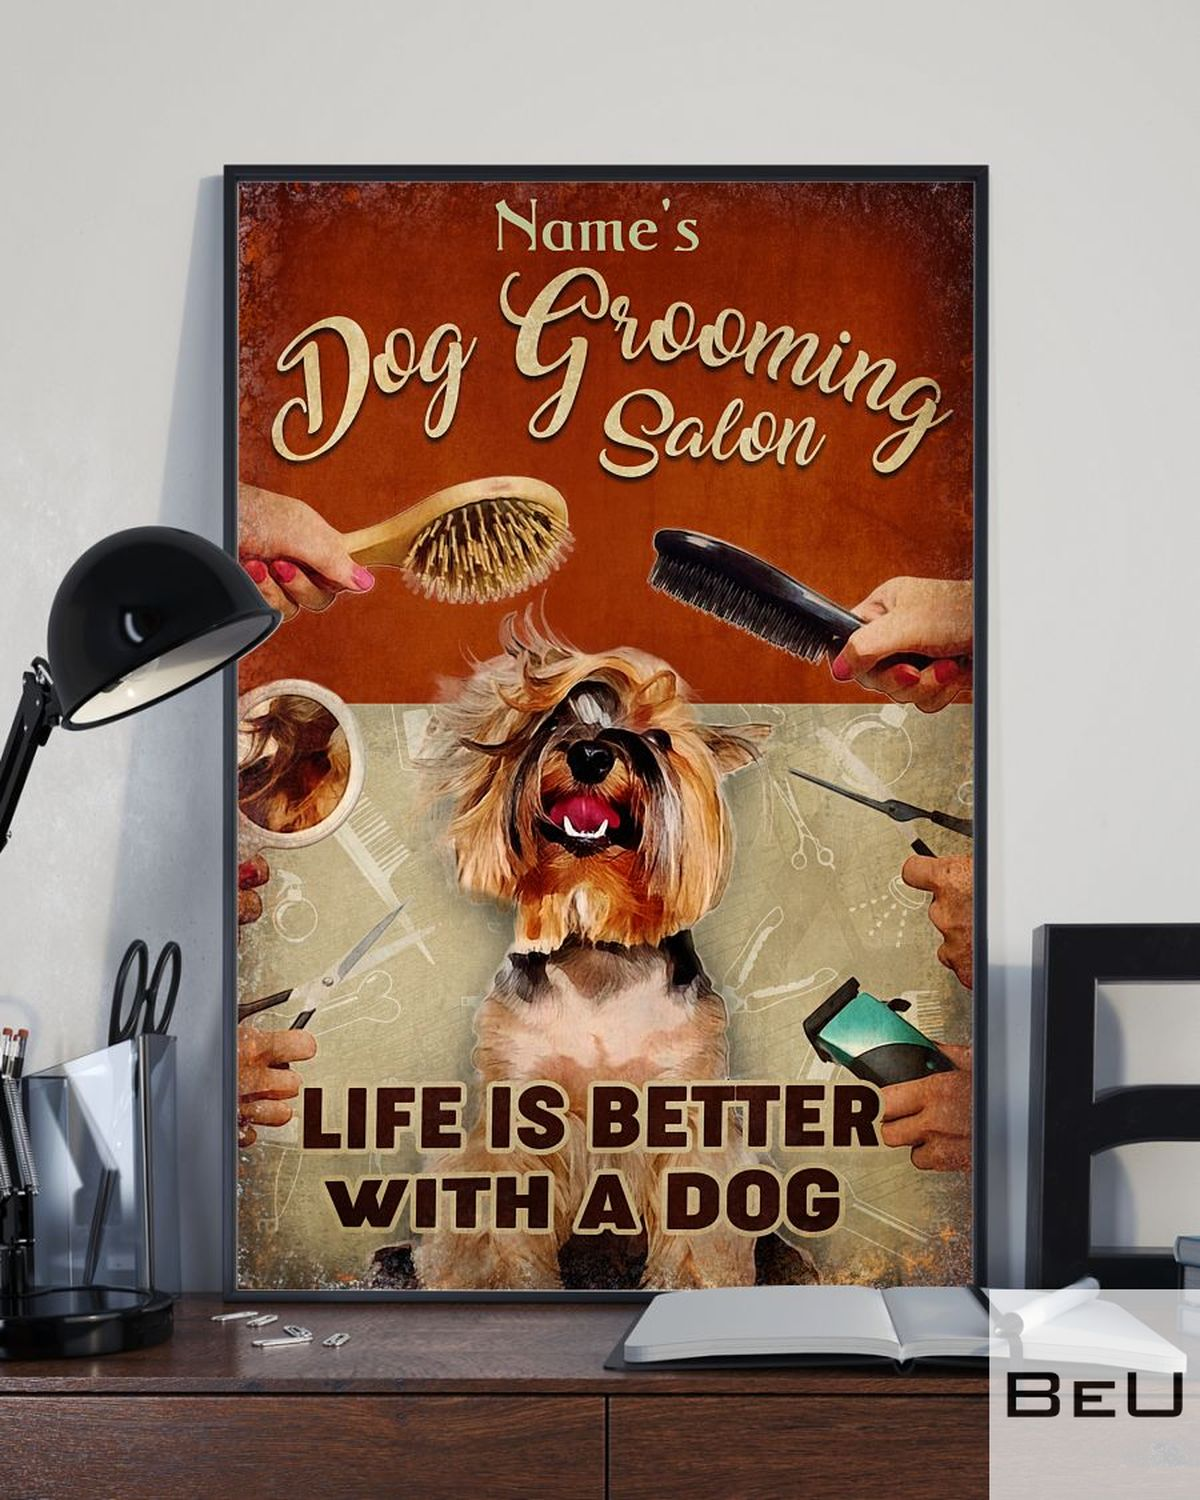 Personalized Dog Grooming Salon life is better with a dog posterx